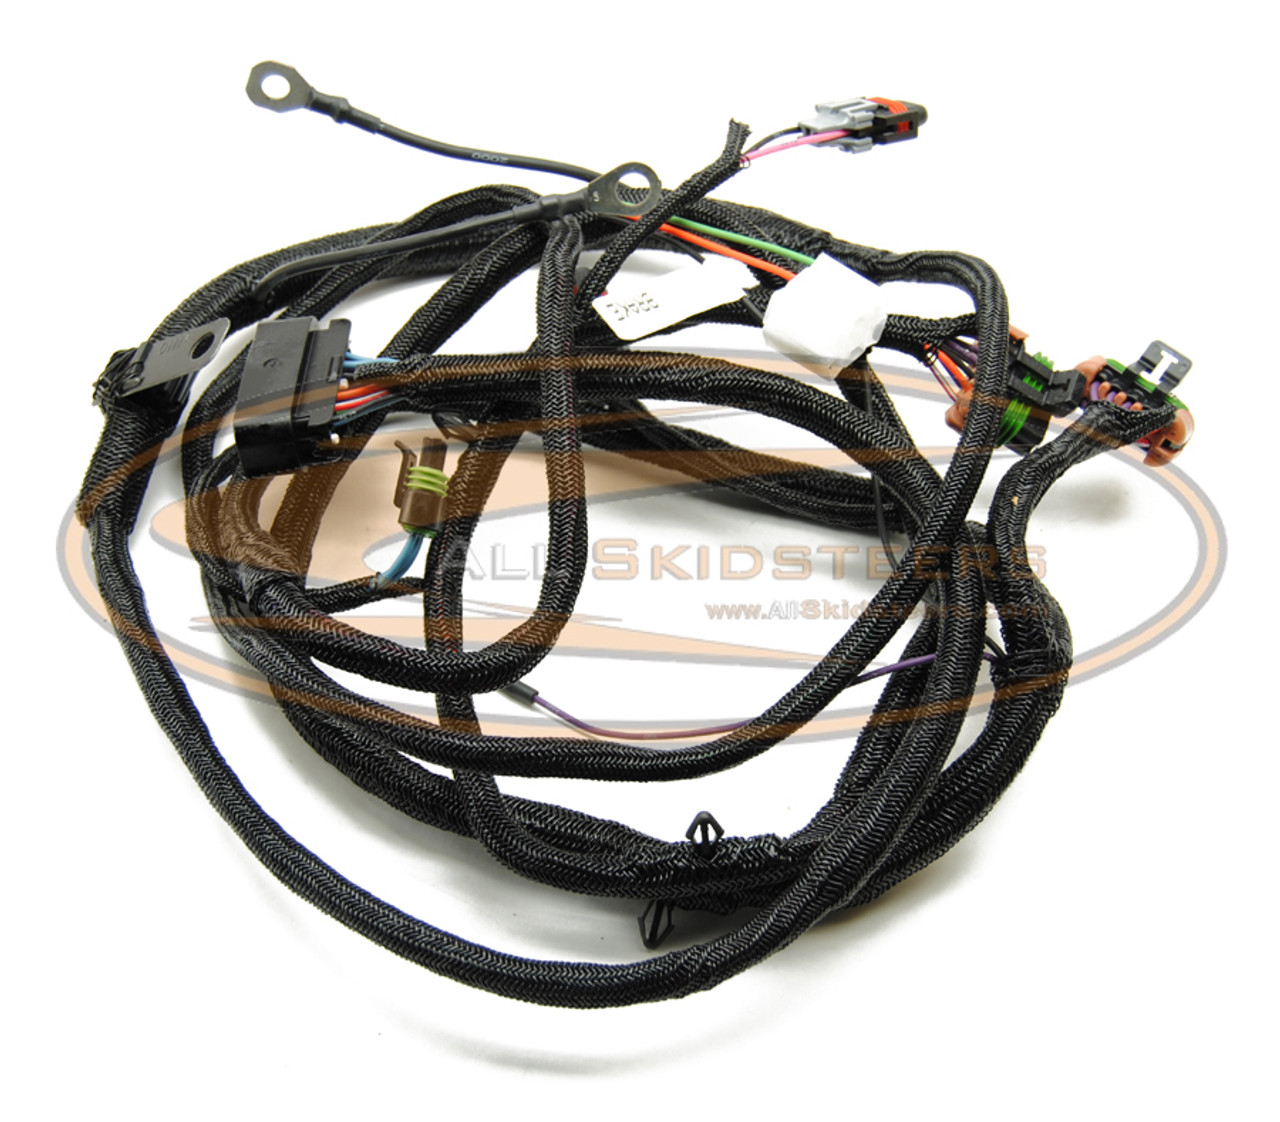 medium resolution of cab wiring harness standard for bobcat skid steer replacescab wiring harness standard